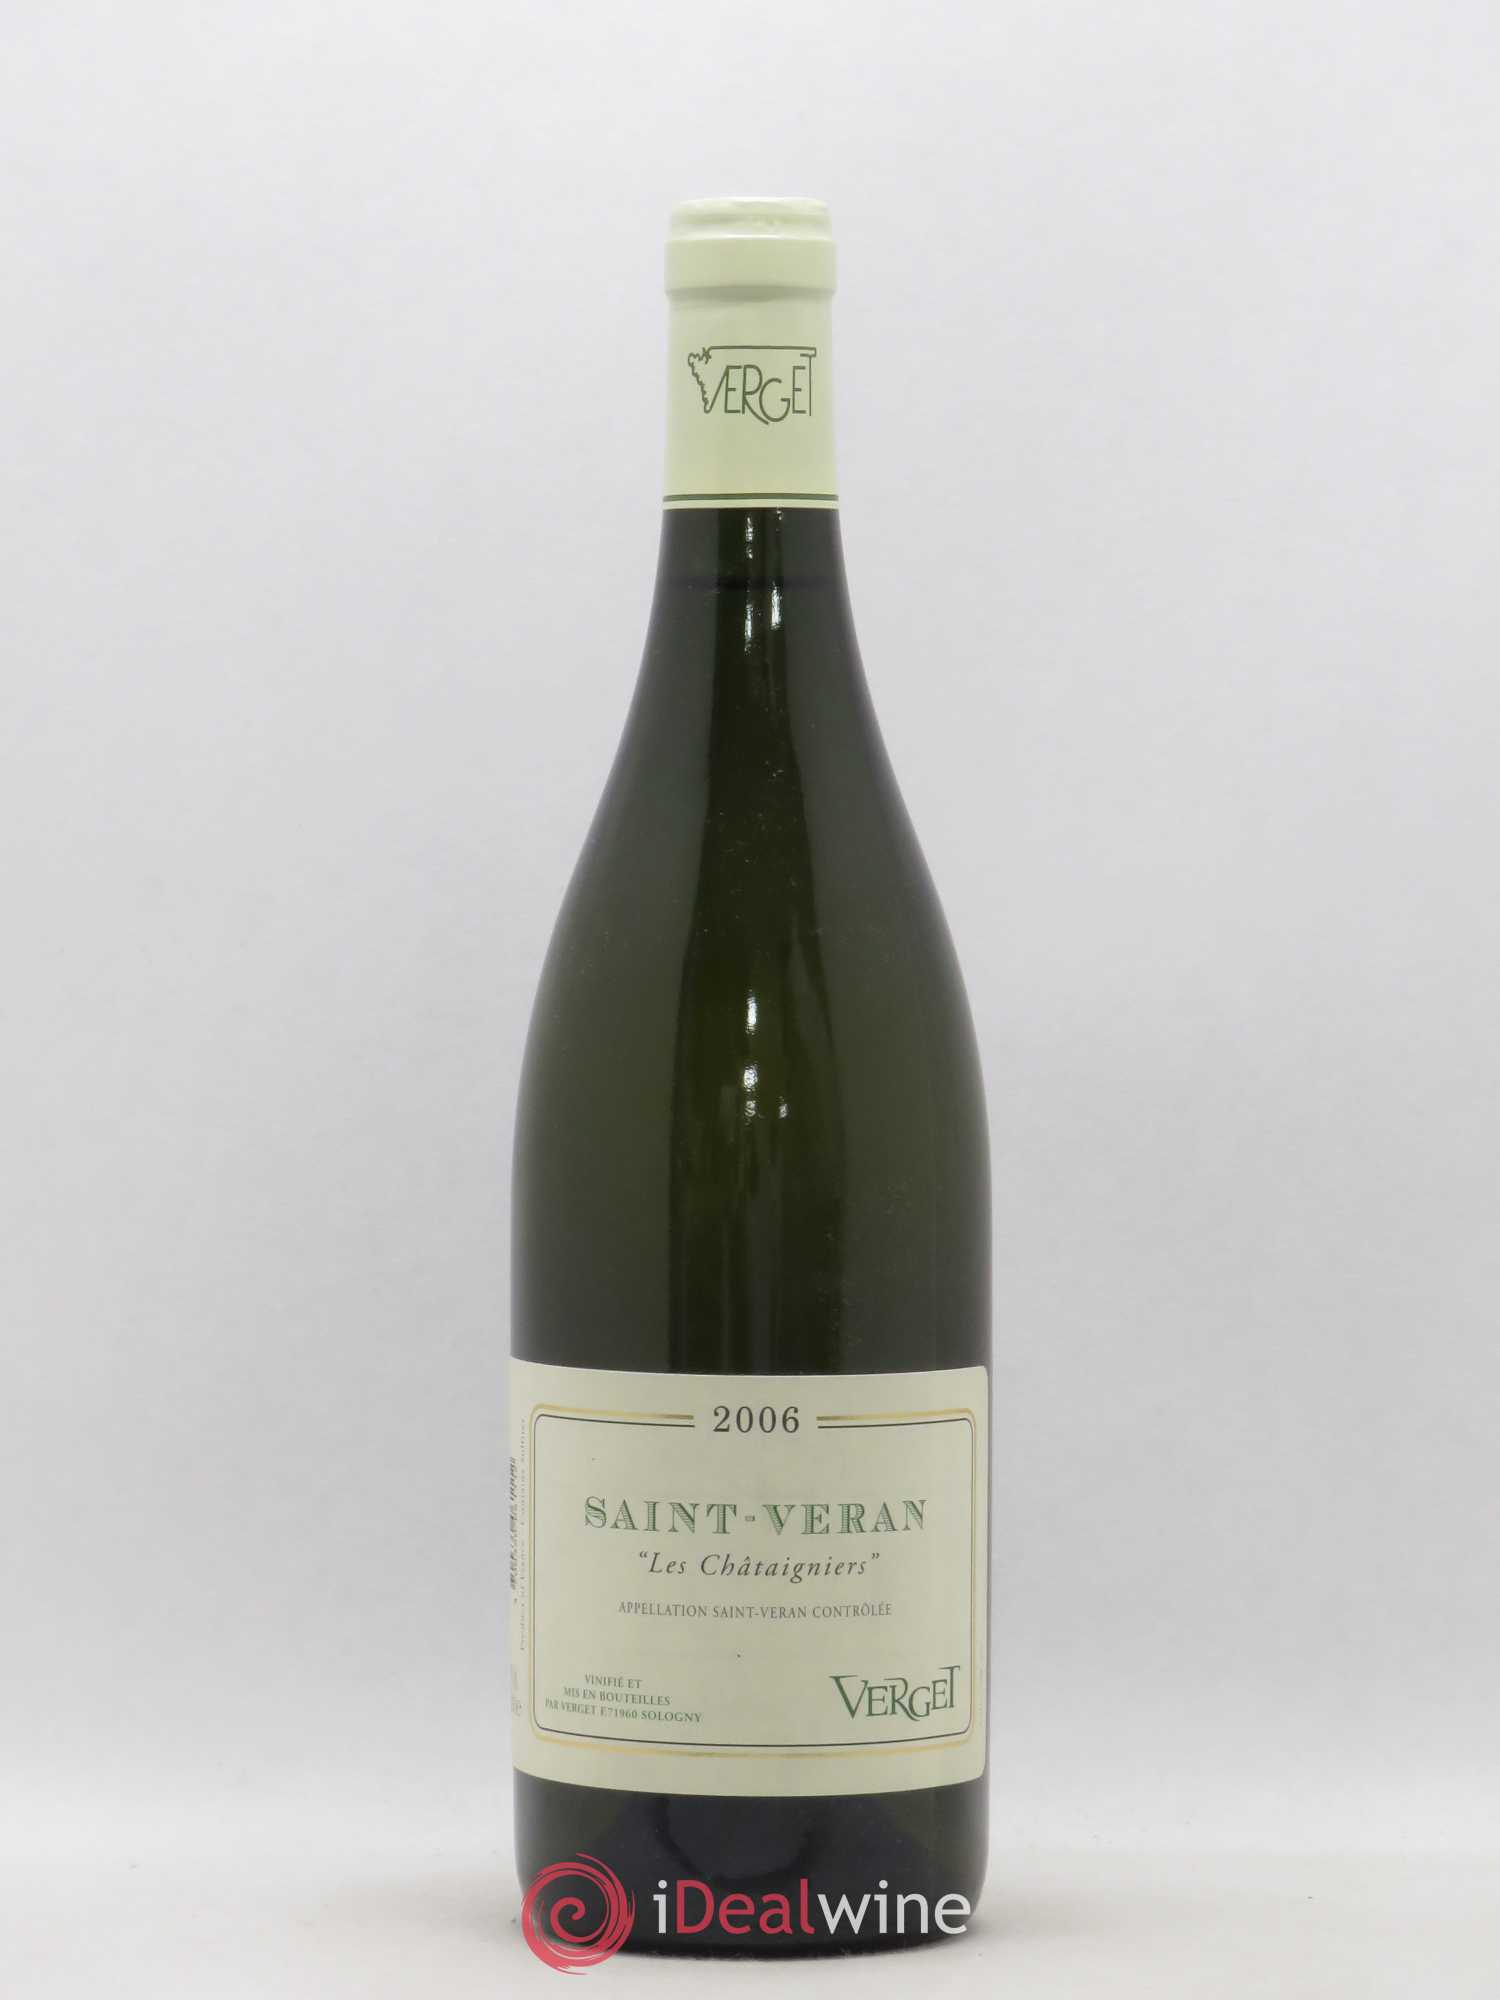 Saint-Véran Les Châtaigniers Verget (no reserve) 2006 - Lot of 1 Bottle